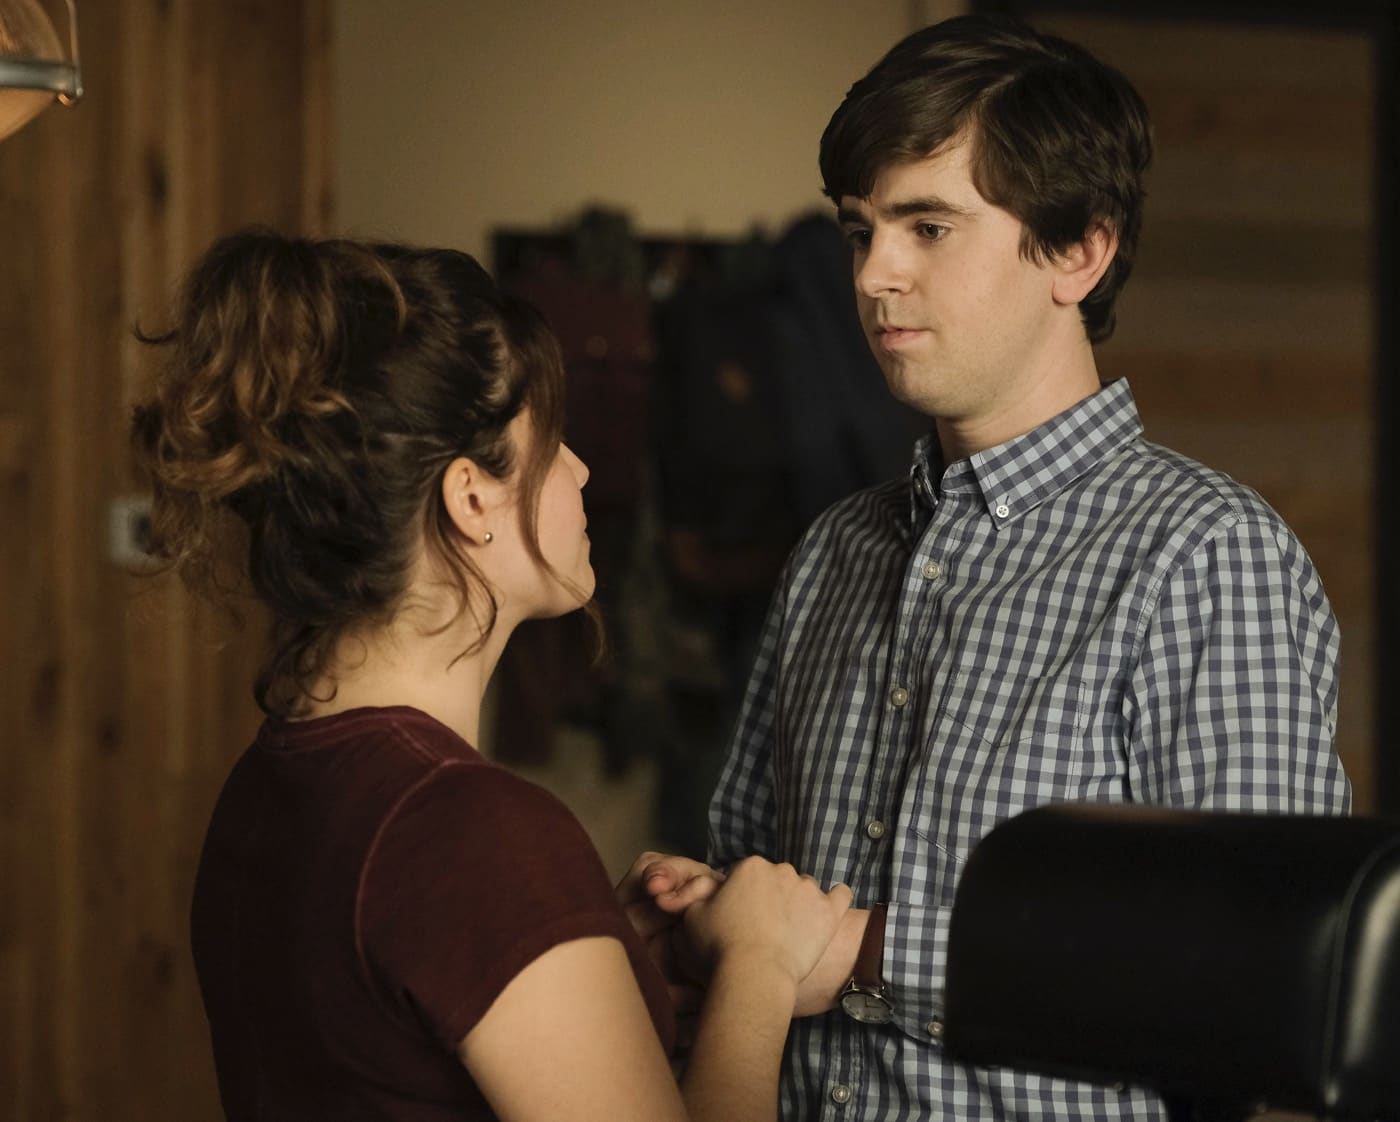 THE GOOD DOCTOR Season 4 Episode 7 The Uncertainty Principle PAIGE SPARA, FREDDIE HIGHMORE